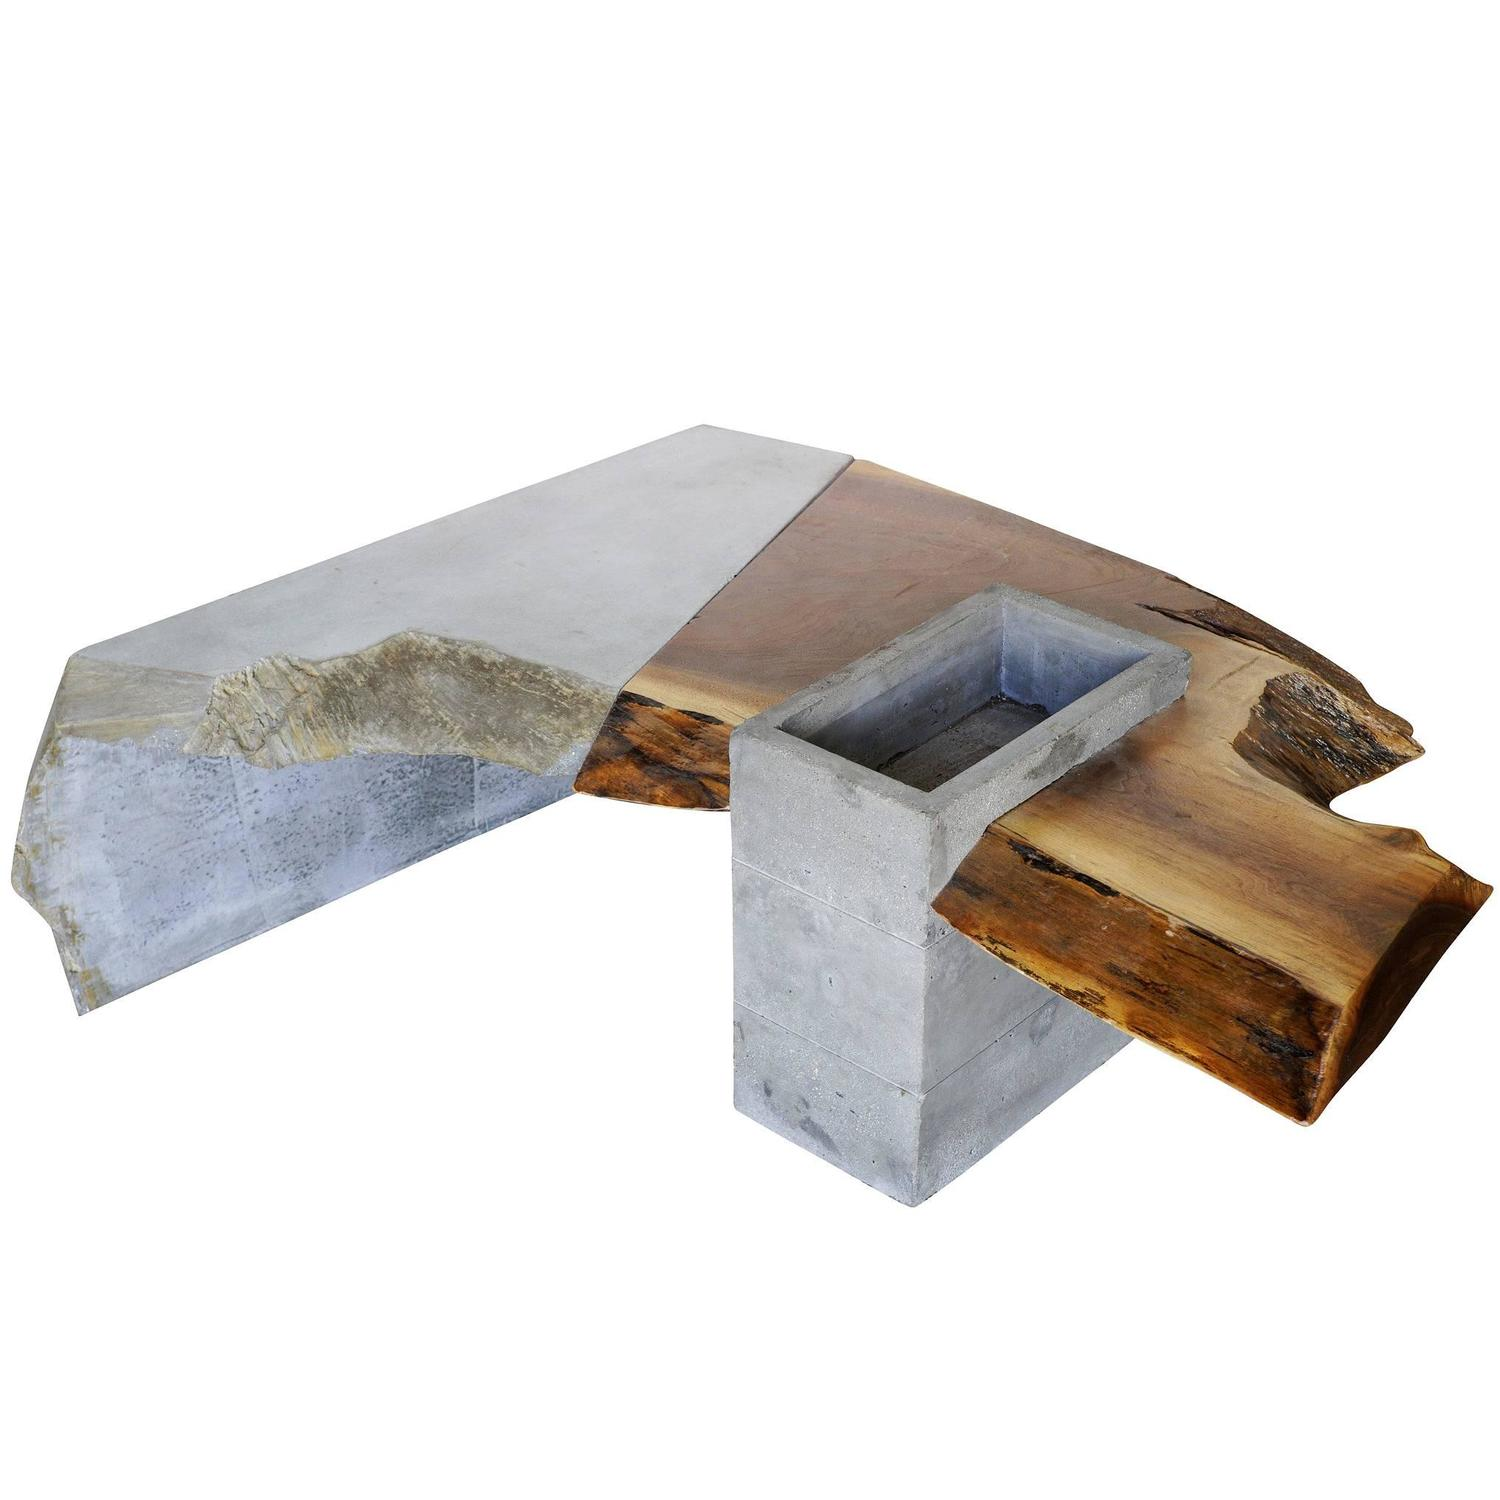 Asymmetric Brutalist Concrete and Driftwood Coffee Table at 1stdibs